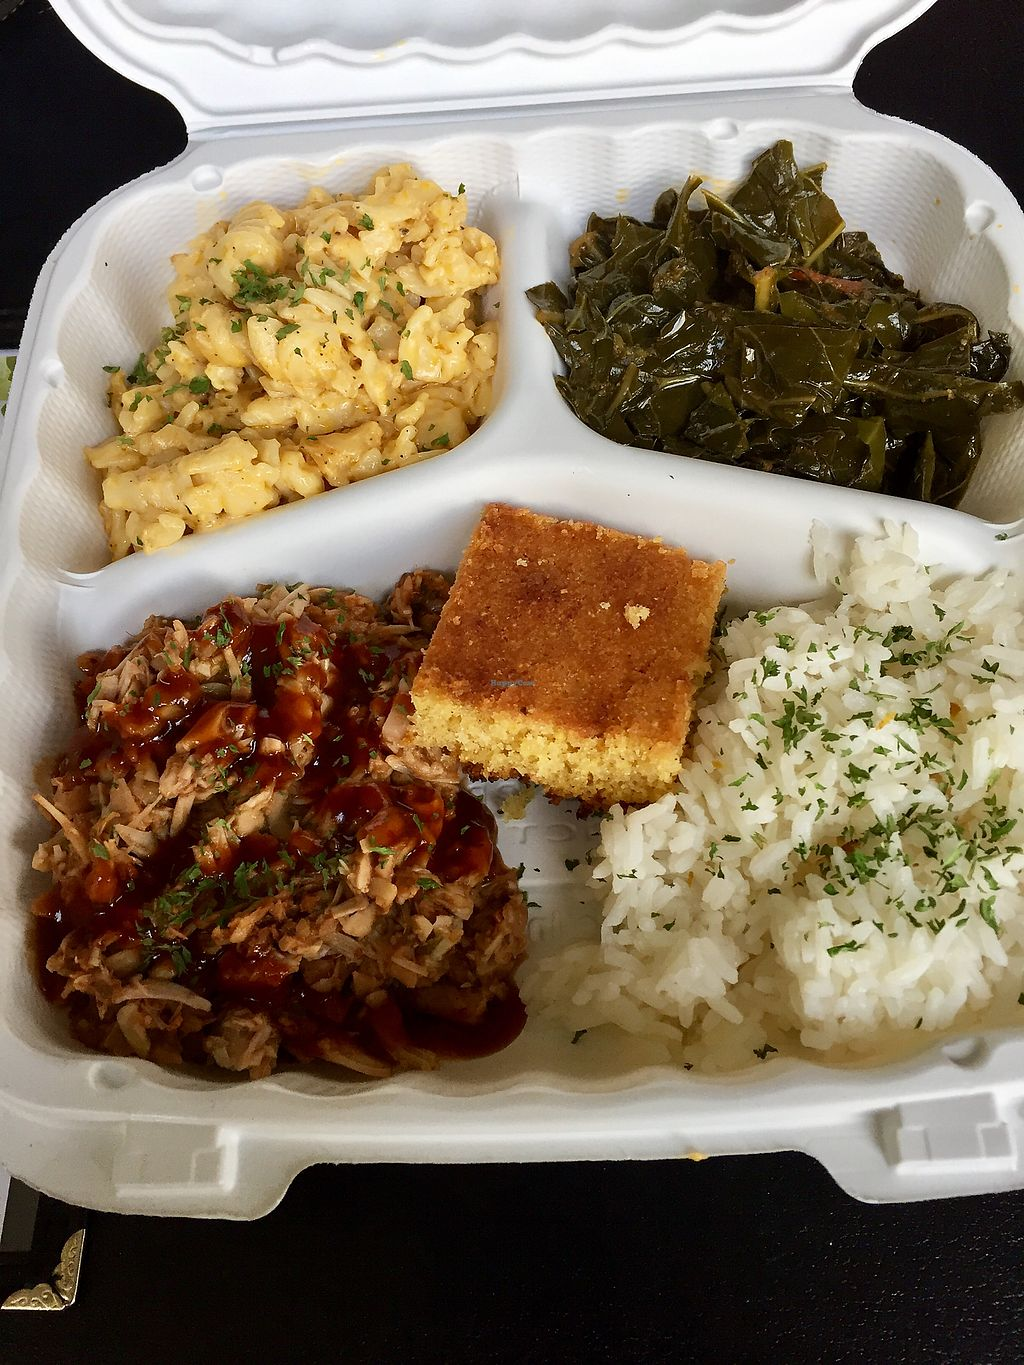 "Photo of Souly Vegan Cafe  by <a href=""/members/profile/LANoL"">LANoL</a> <br/>Vegan Soul Food Fabulousness - BBQ Jackfruit, M&C and Greens? <br/> October 8, 2017  - <a href='/contact/abuse/image/87664/313005'>Report</a>"